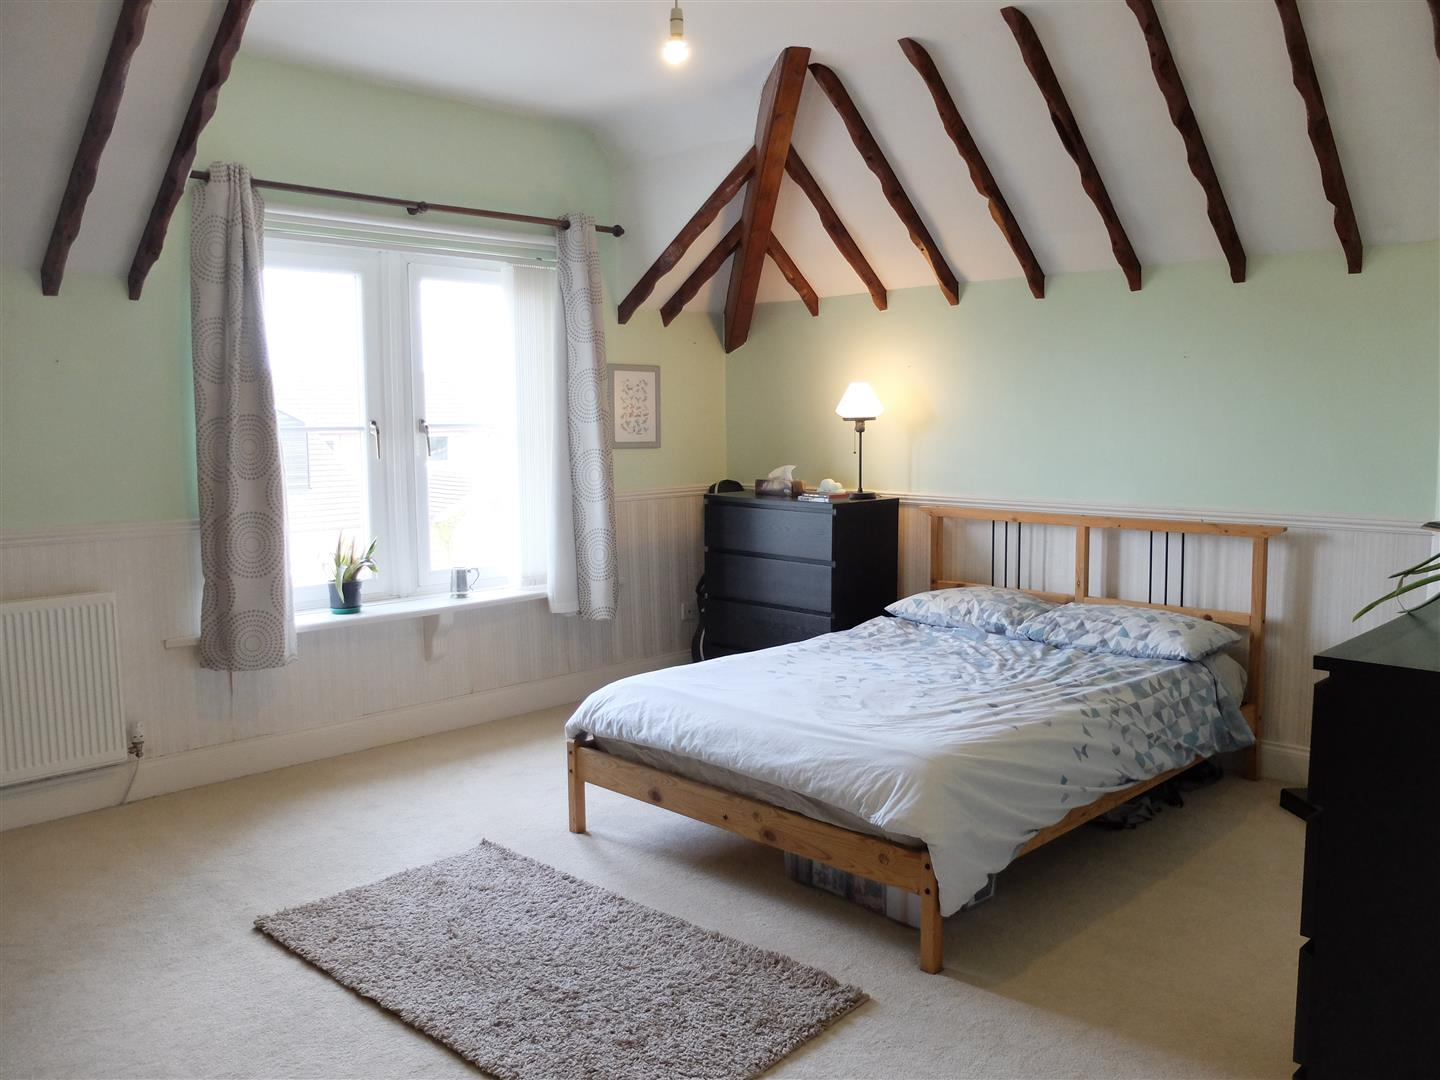 26 The Green Carlisle 2 Bedrooms House - End Terrace On Sale 180,000